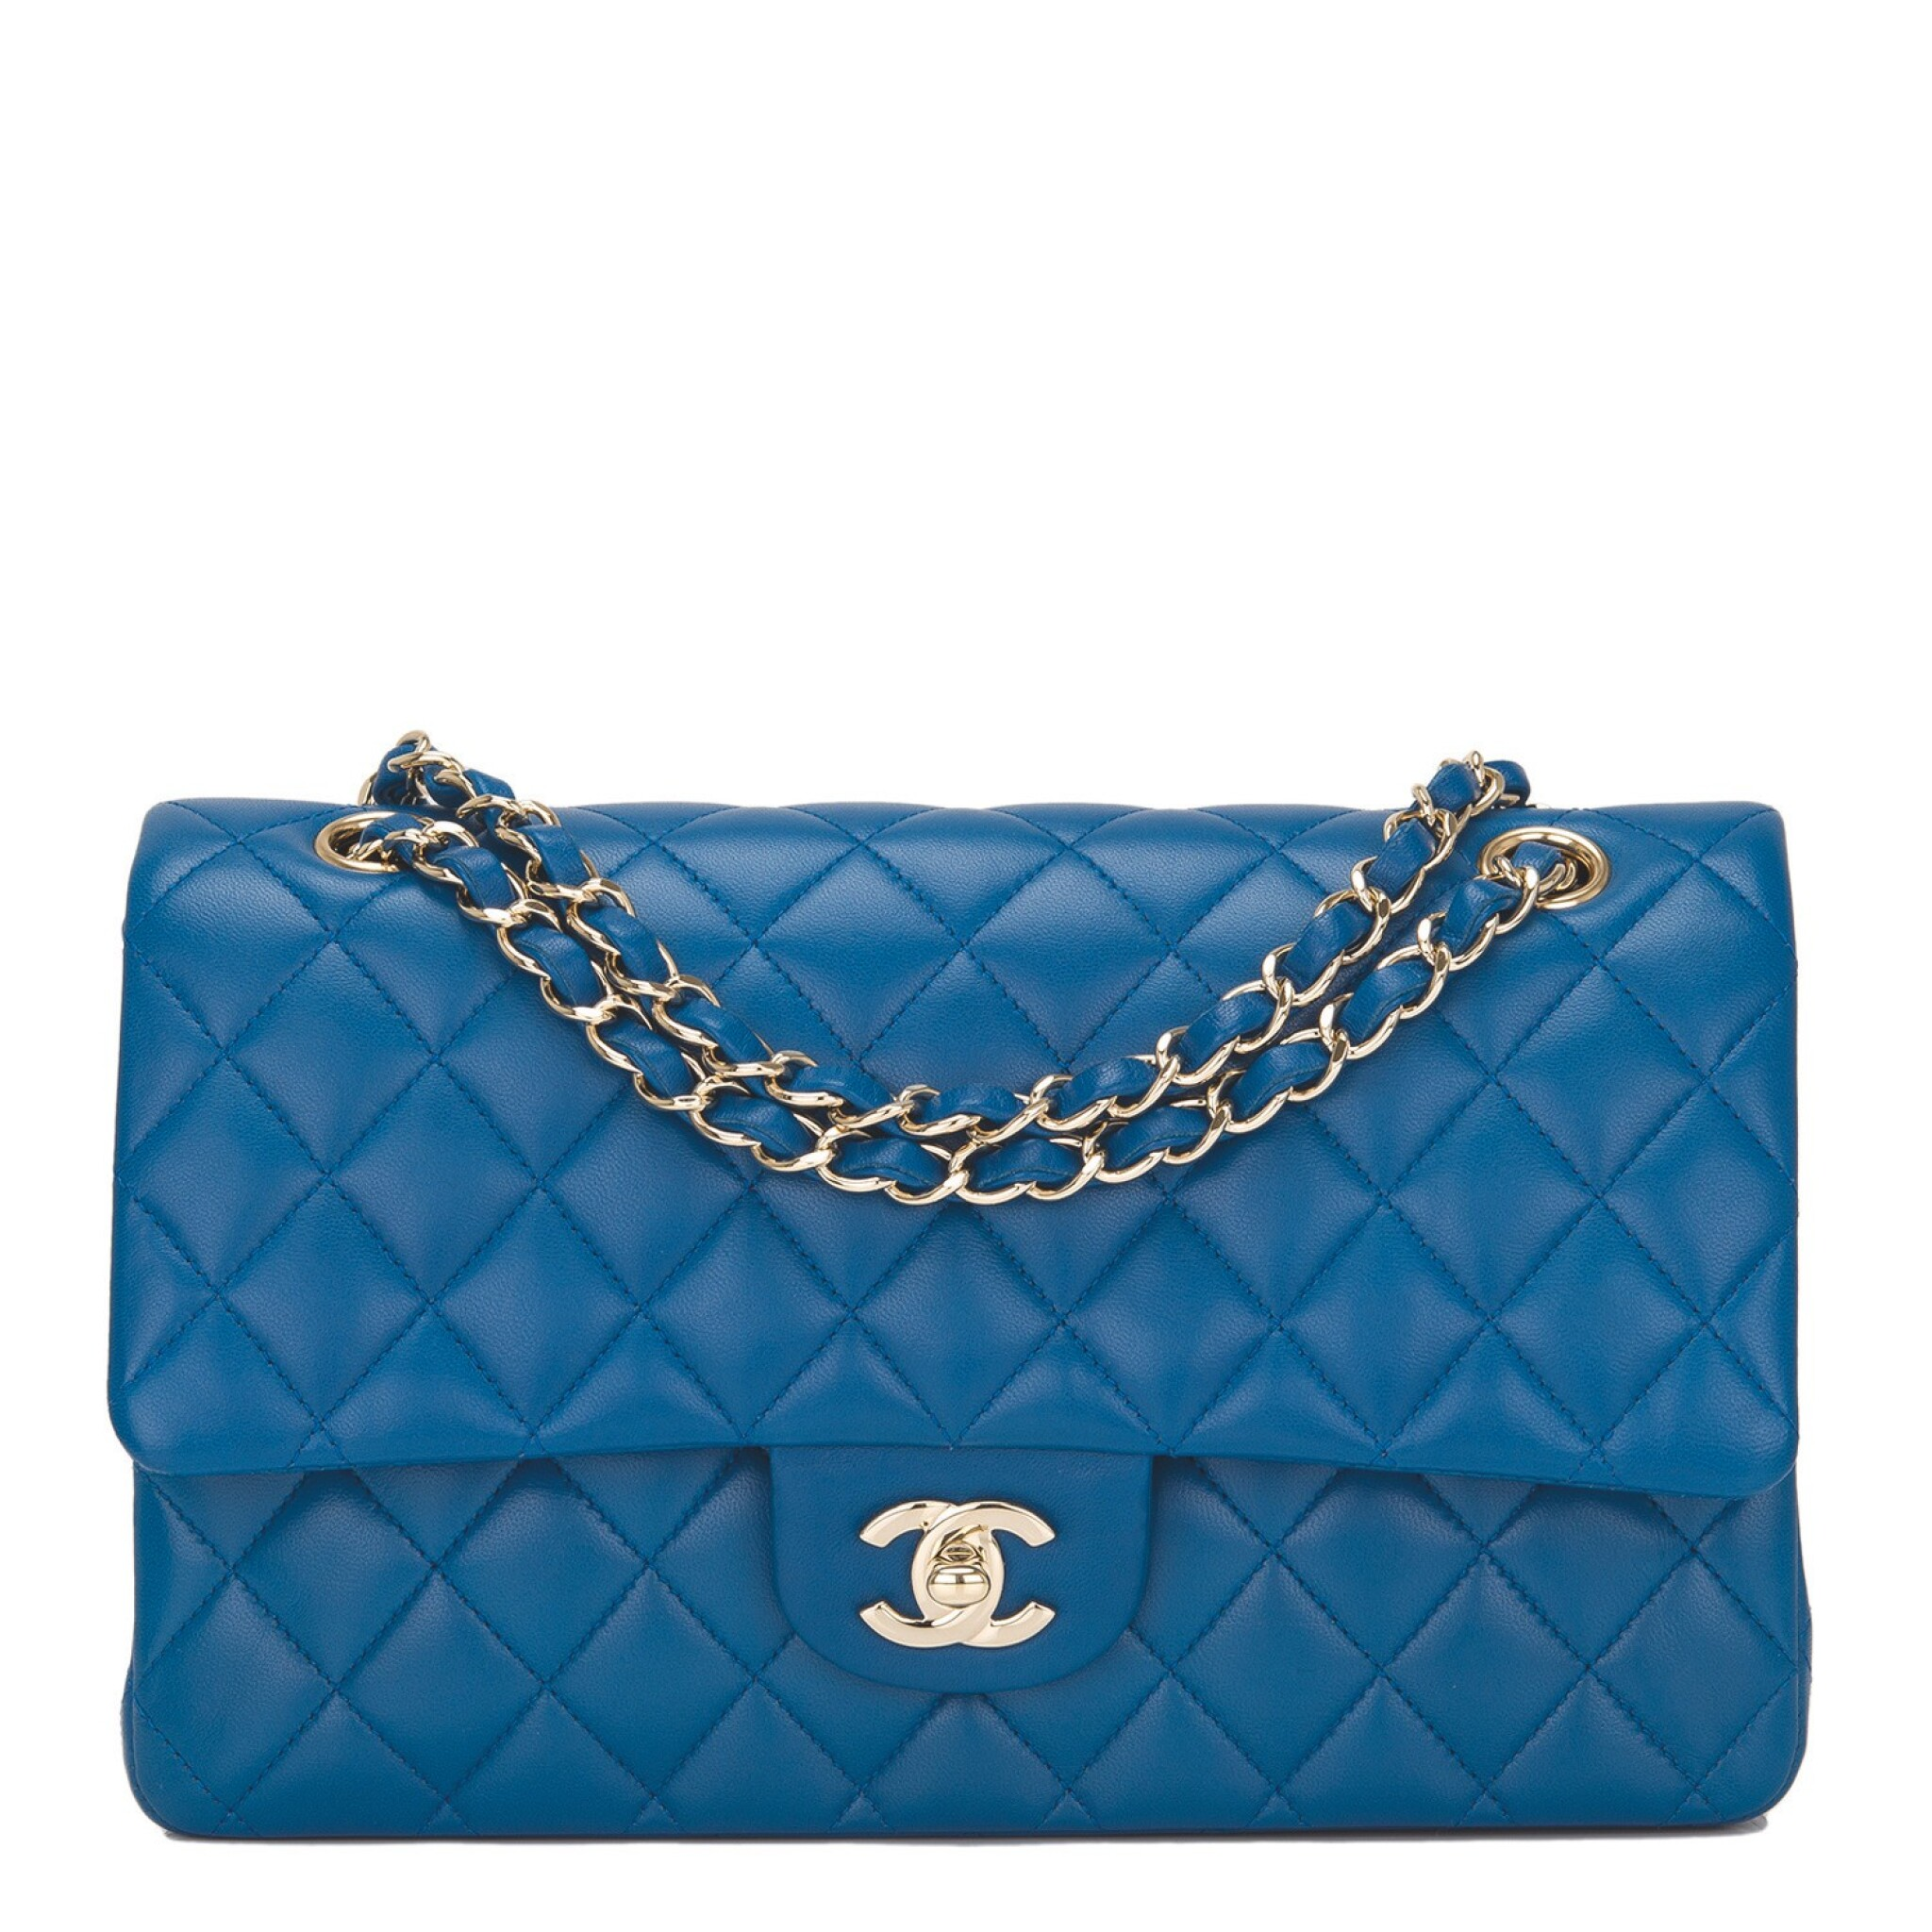 View full screen - View 1 of Lot 43. Chanel Blue Quilted Medium Classic Double Flap Bag of Lambskin Leather with Light Gold Tone Hardware.